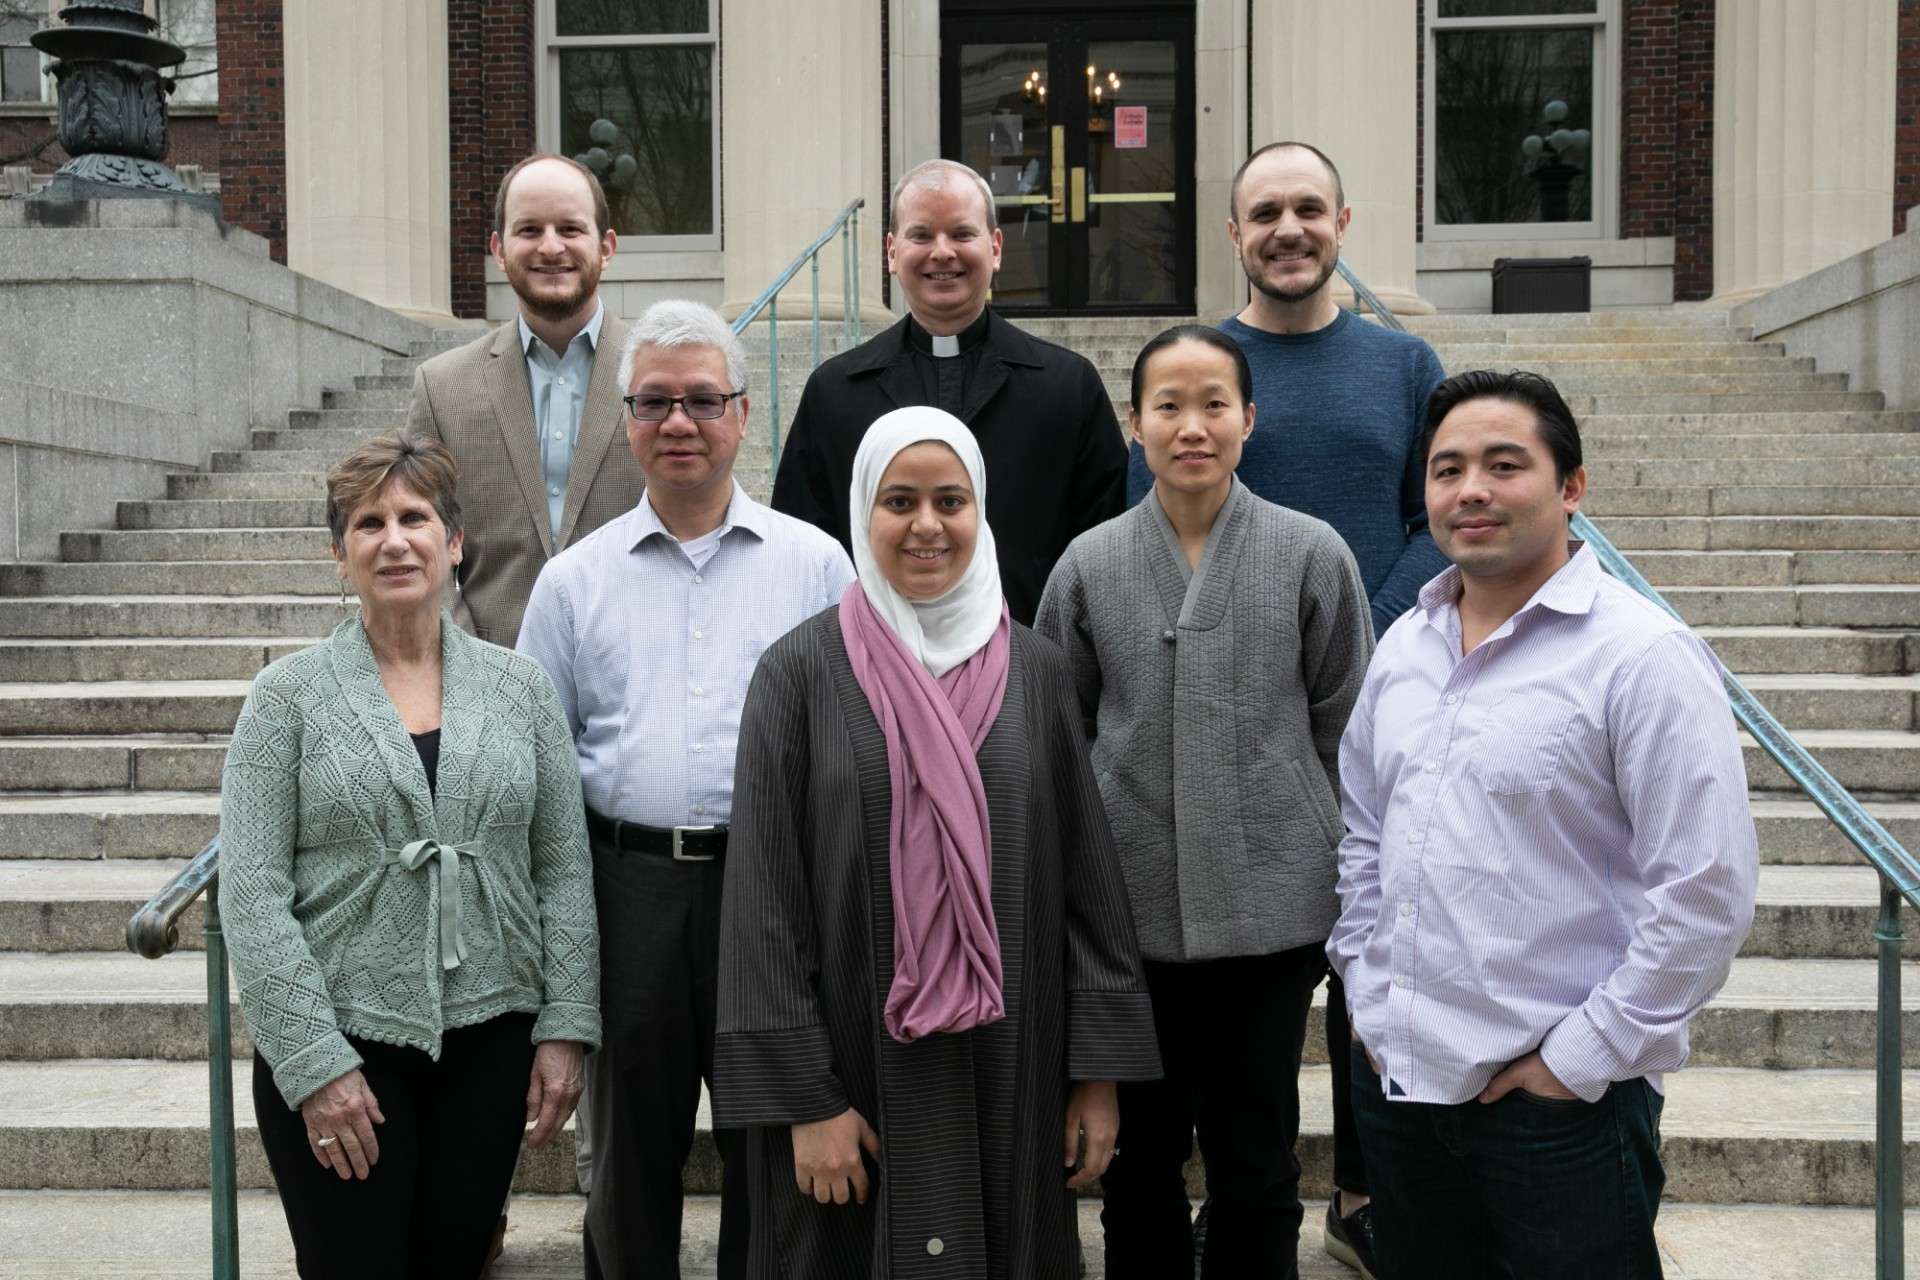 Religious Life Advisers on the steps to Earl Hall.